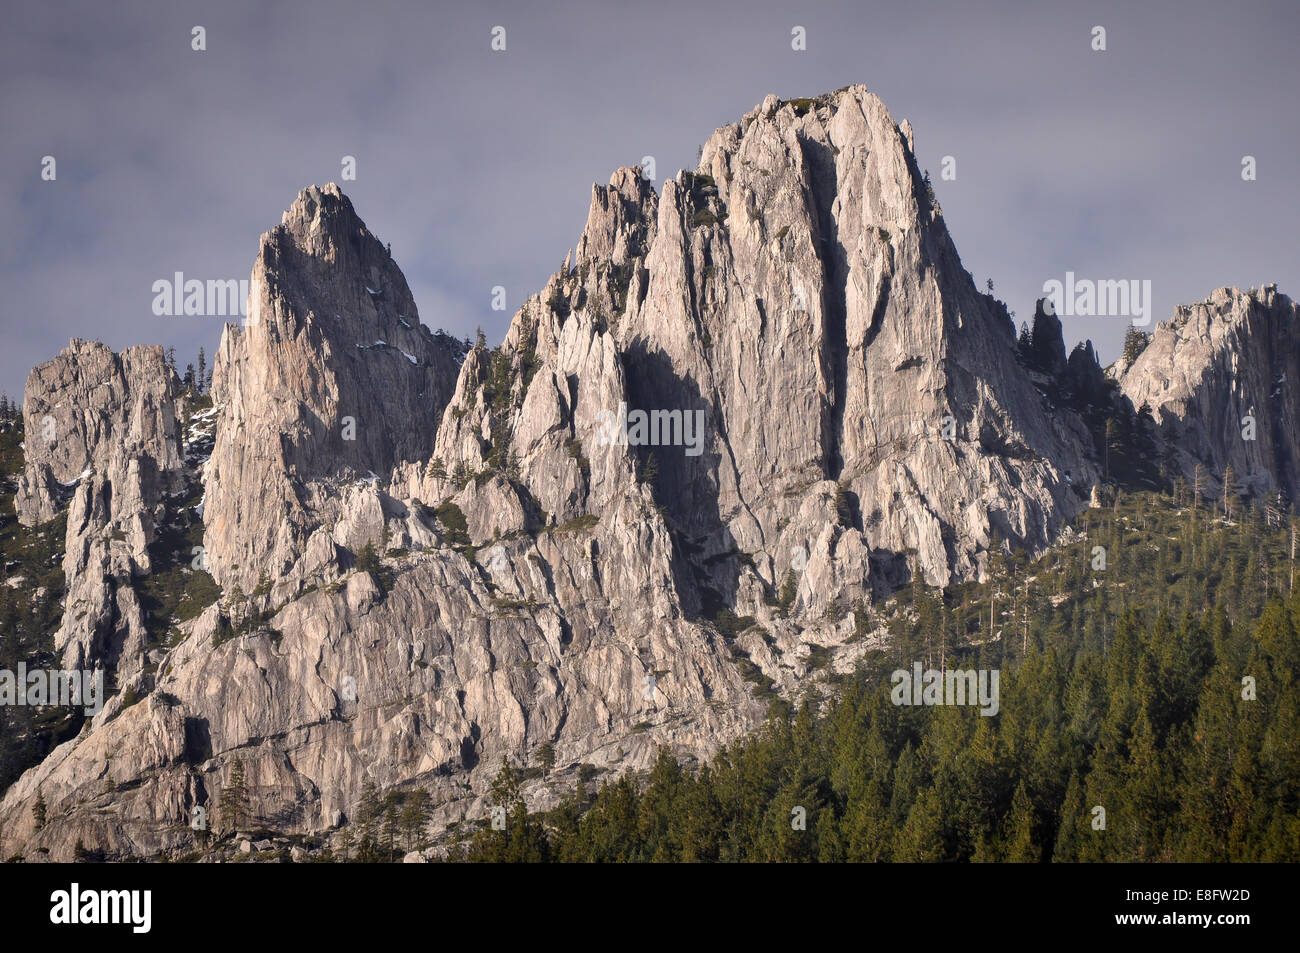 USA, California, Jagged Mountain Peaks of Castle Crags State Park - Stock Image